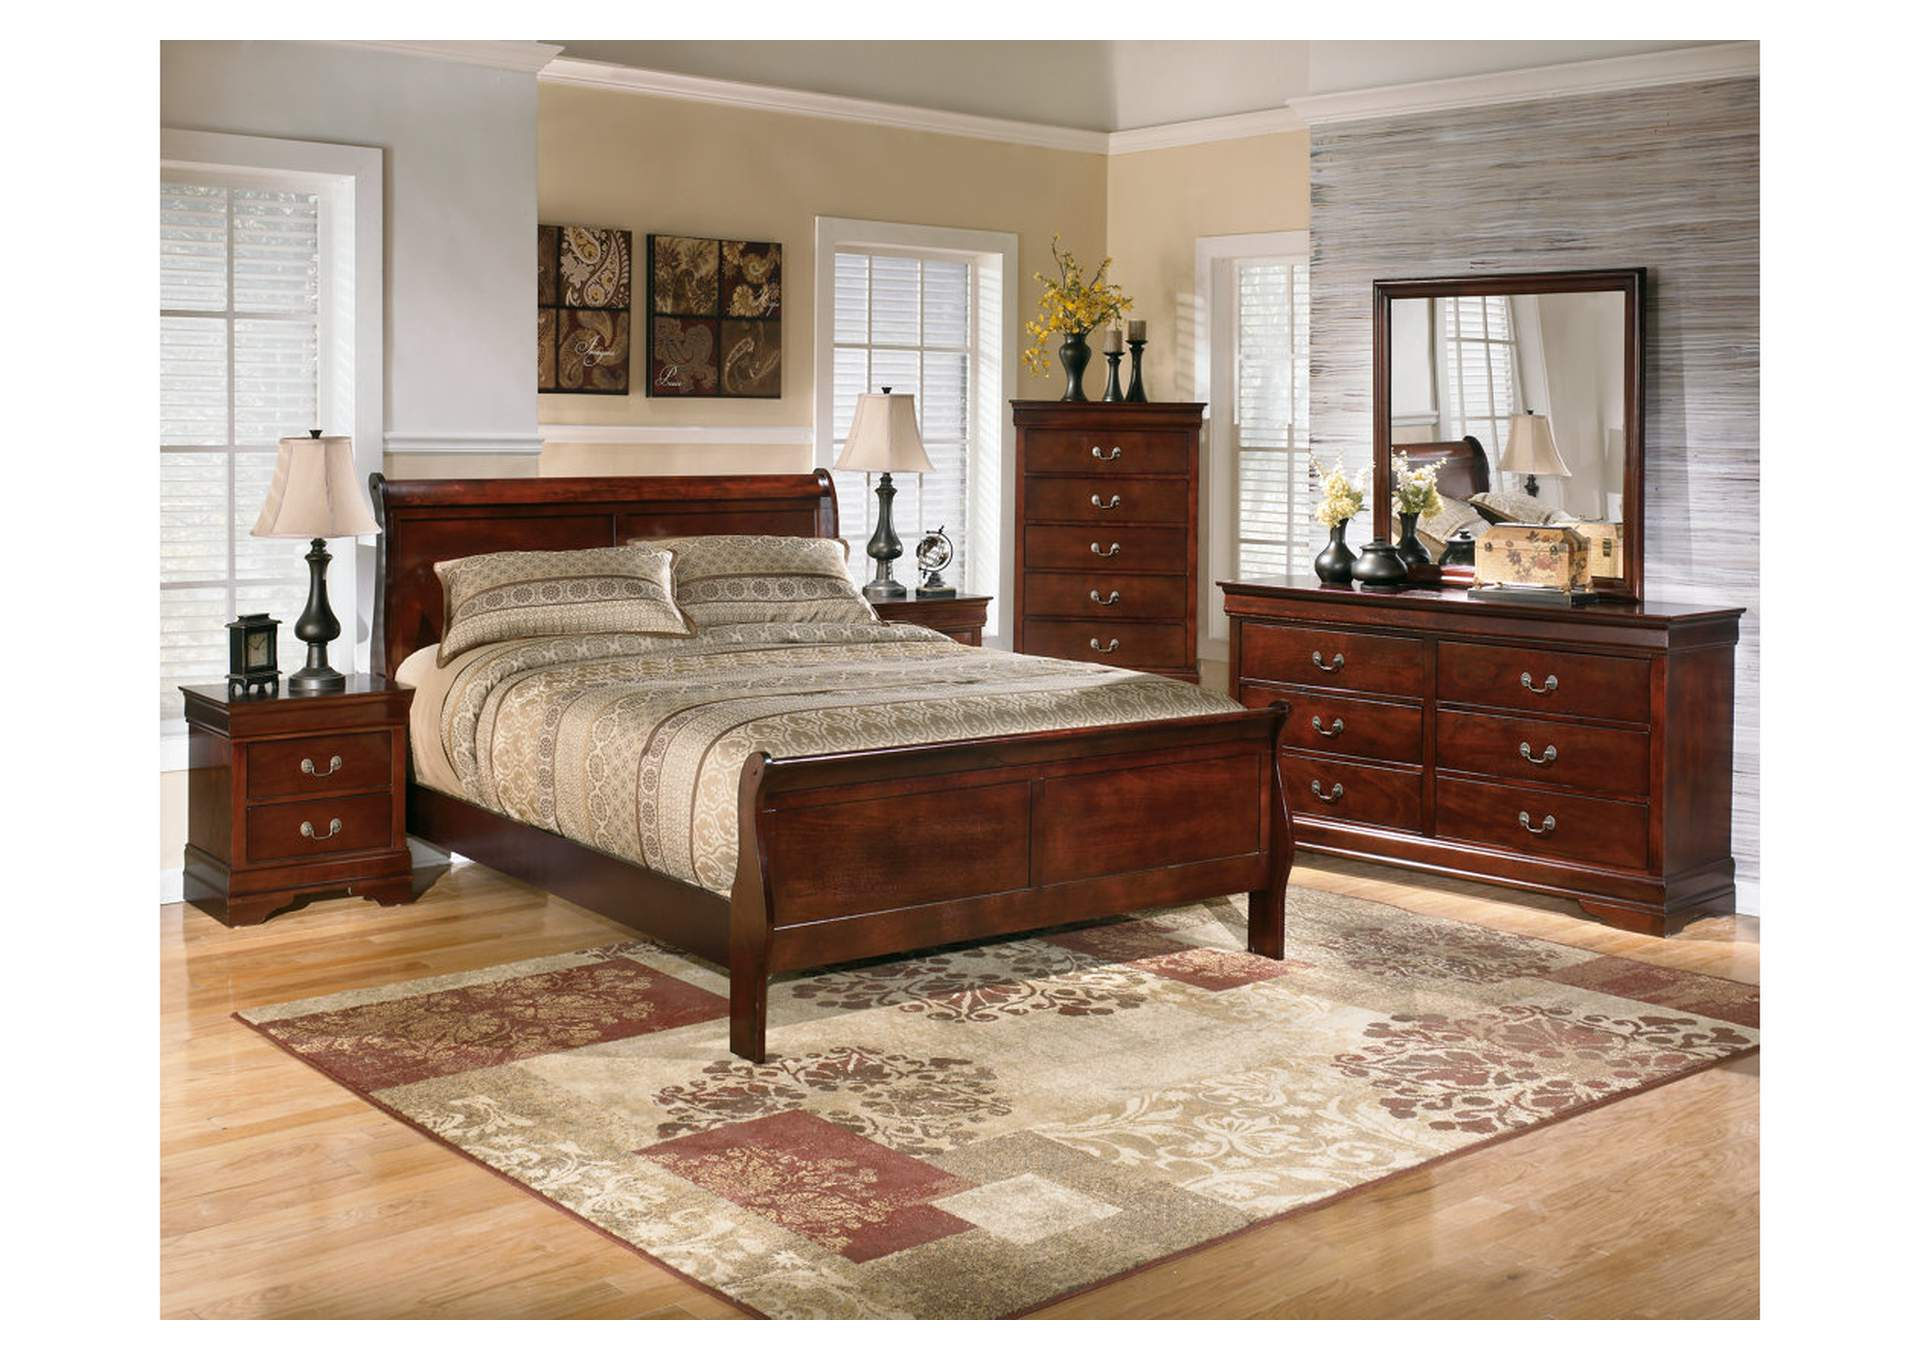 Alisdair King Sleigh Bed w/Dresser & Mirror,Signature Design By Ashley